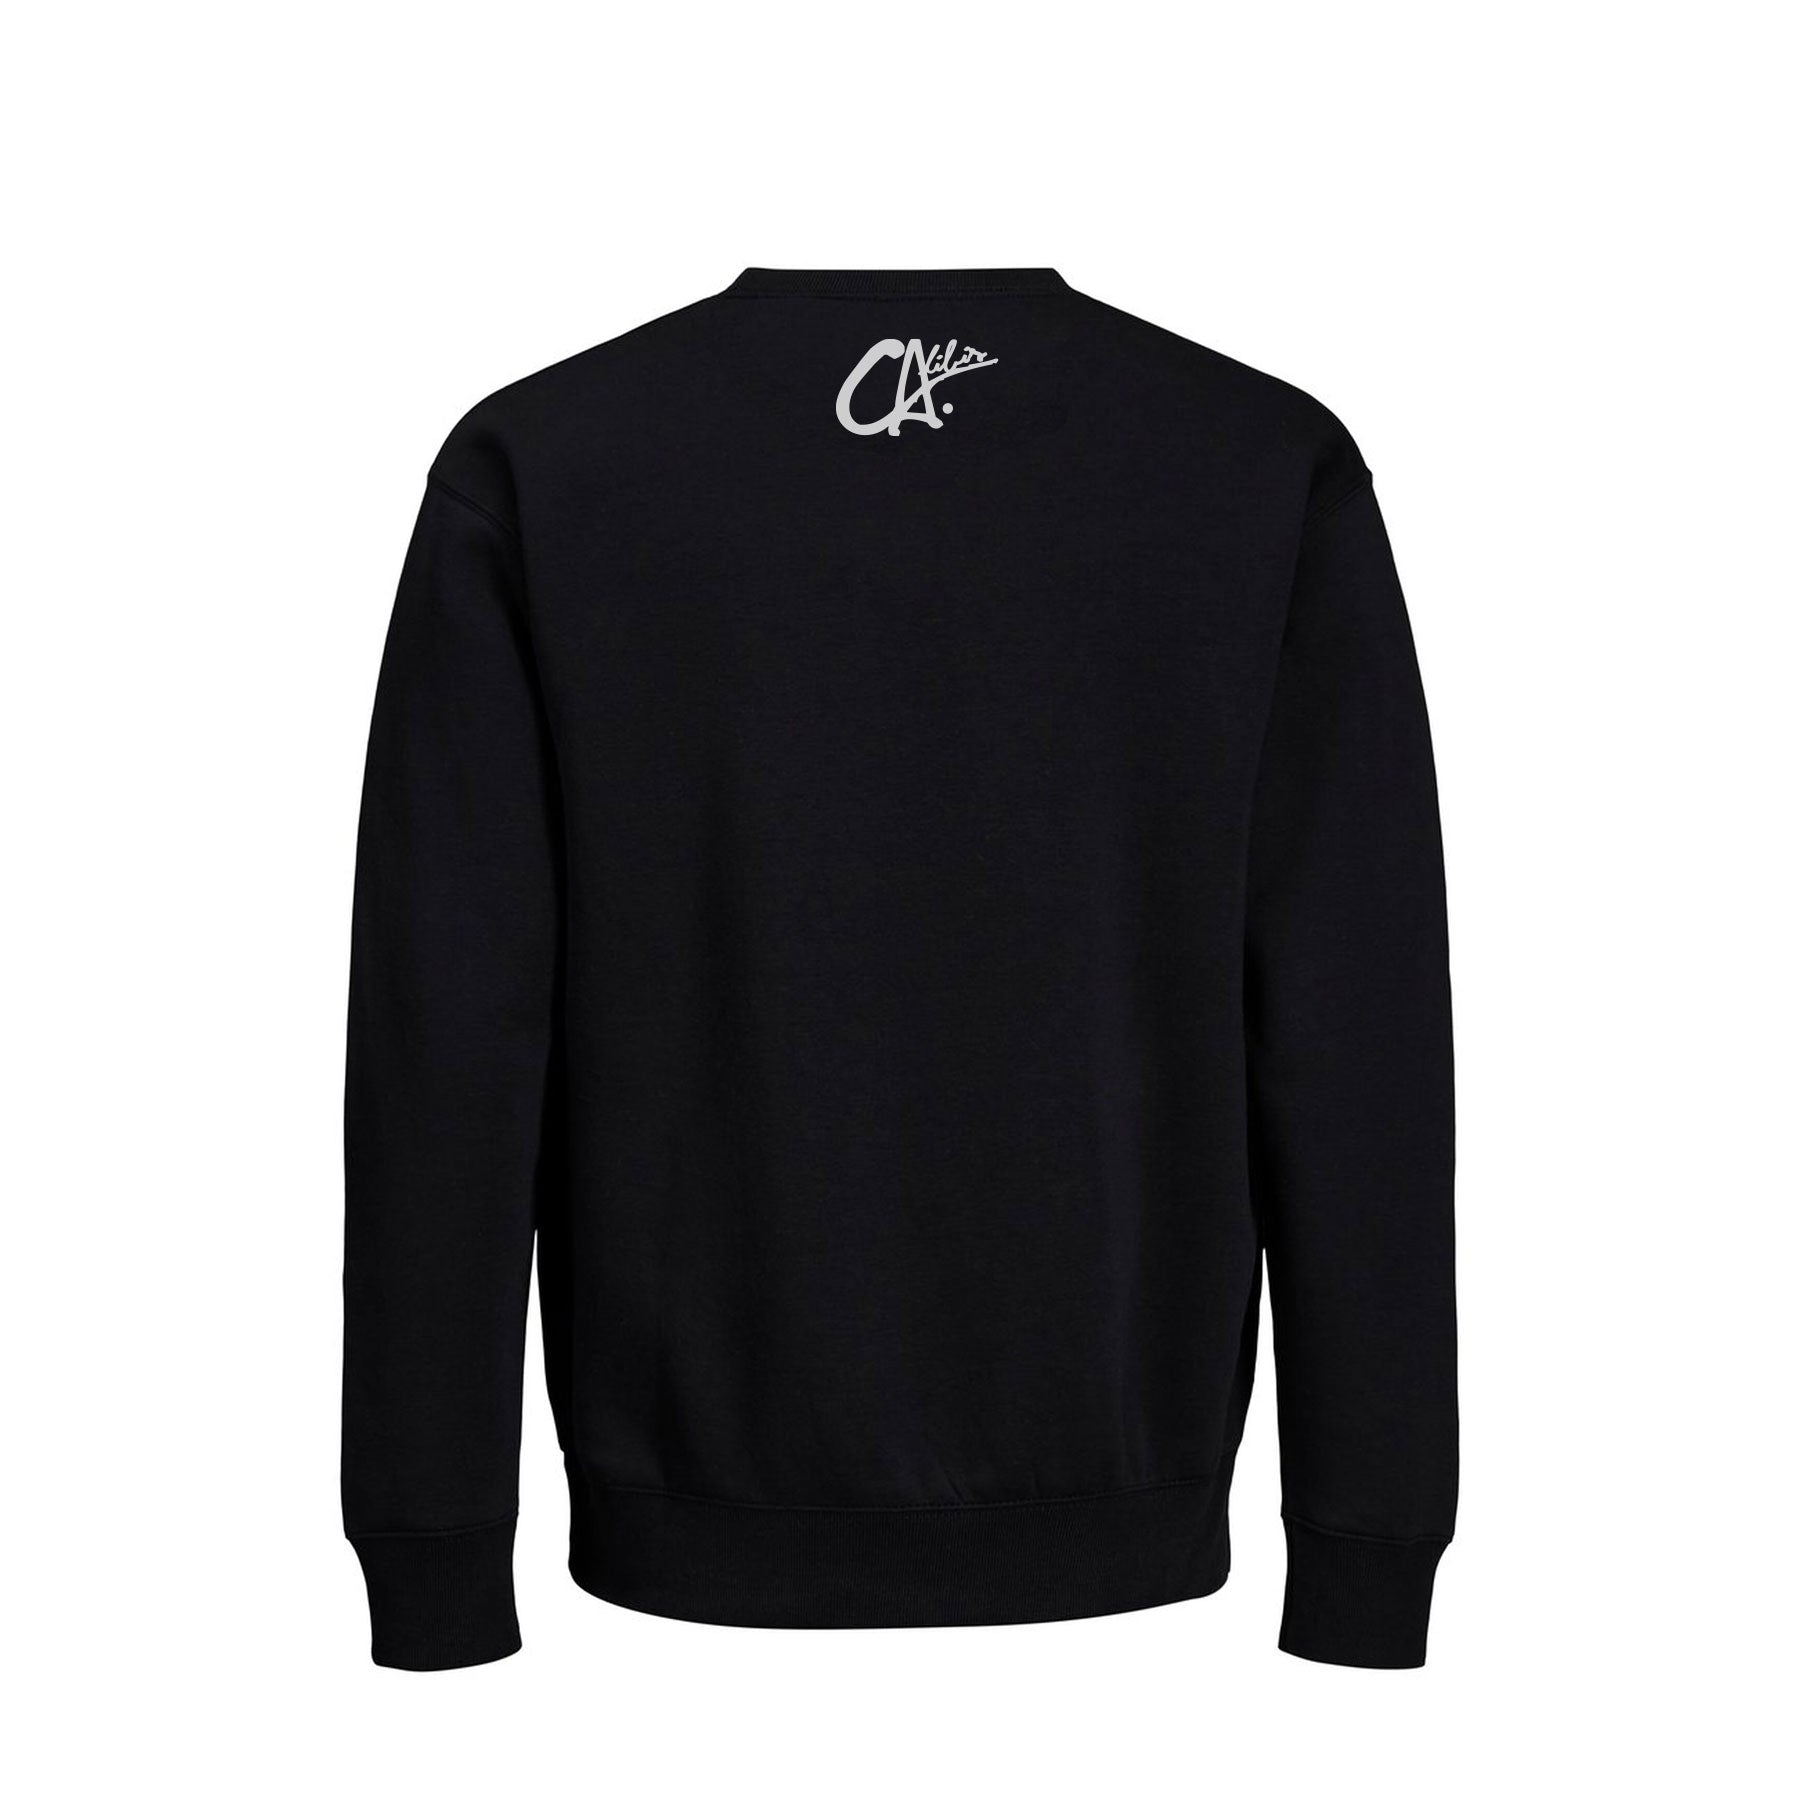 Logo Crewneck Sweater by Calibis Clothing